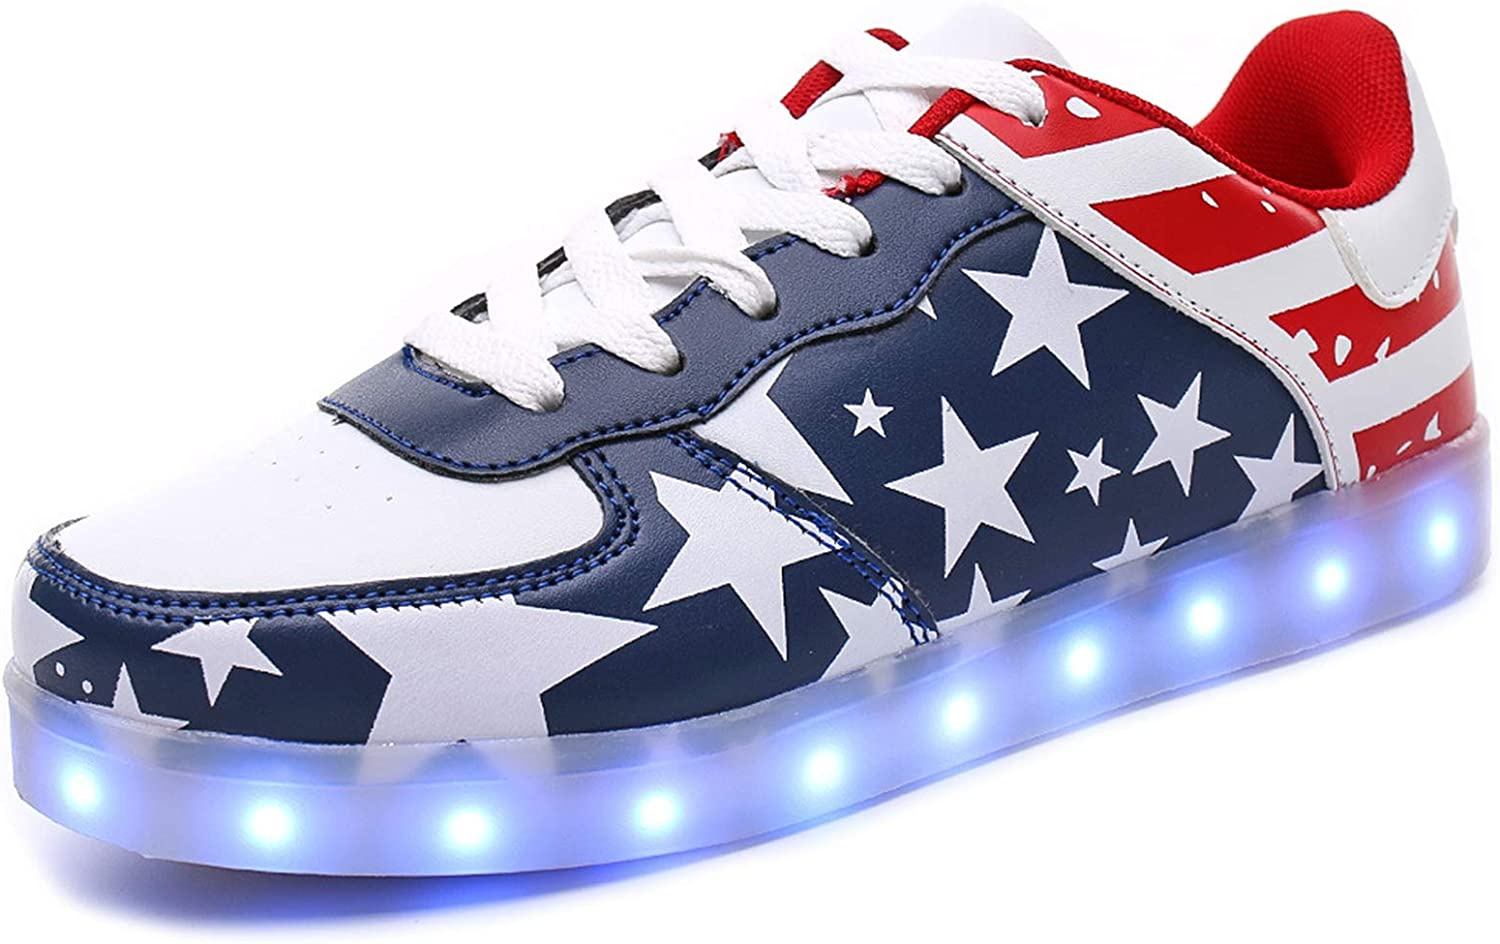 IGxx LED Shoes for Men USA 35% Ranking TOP8 OFF Sneakers Recharging USB Star Ligh